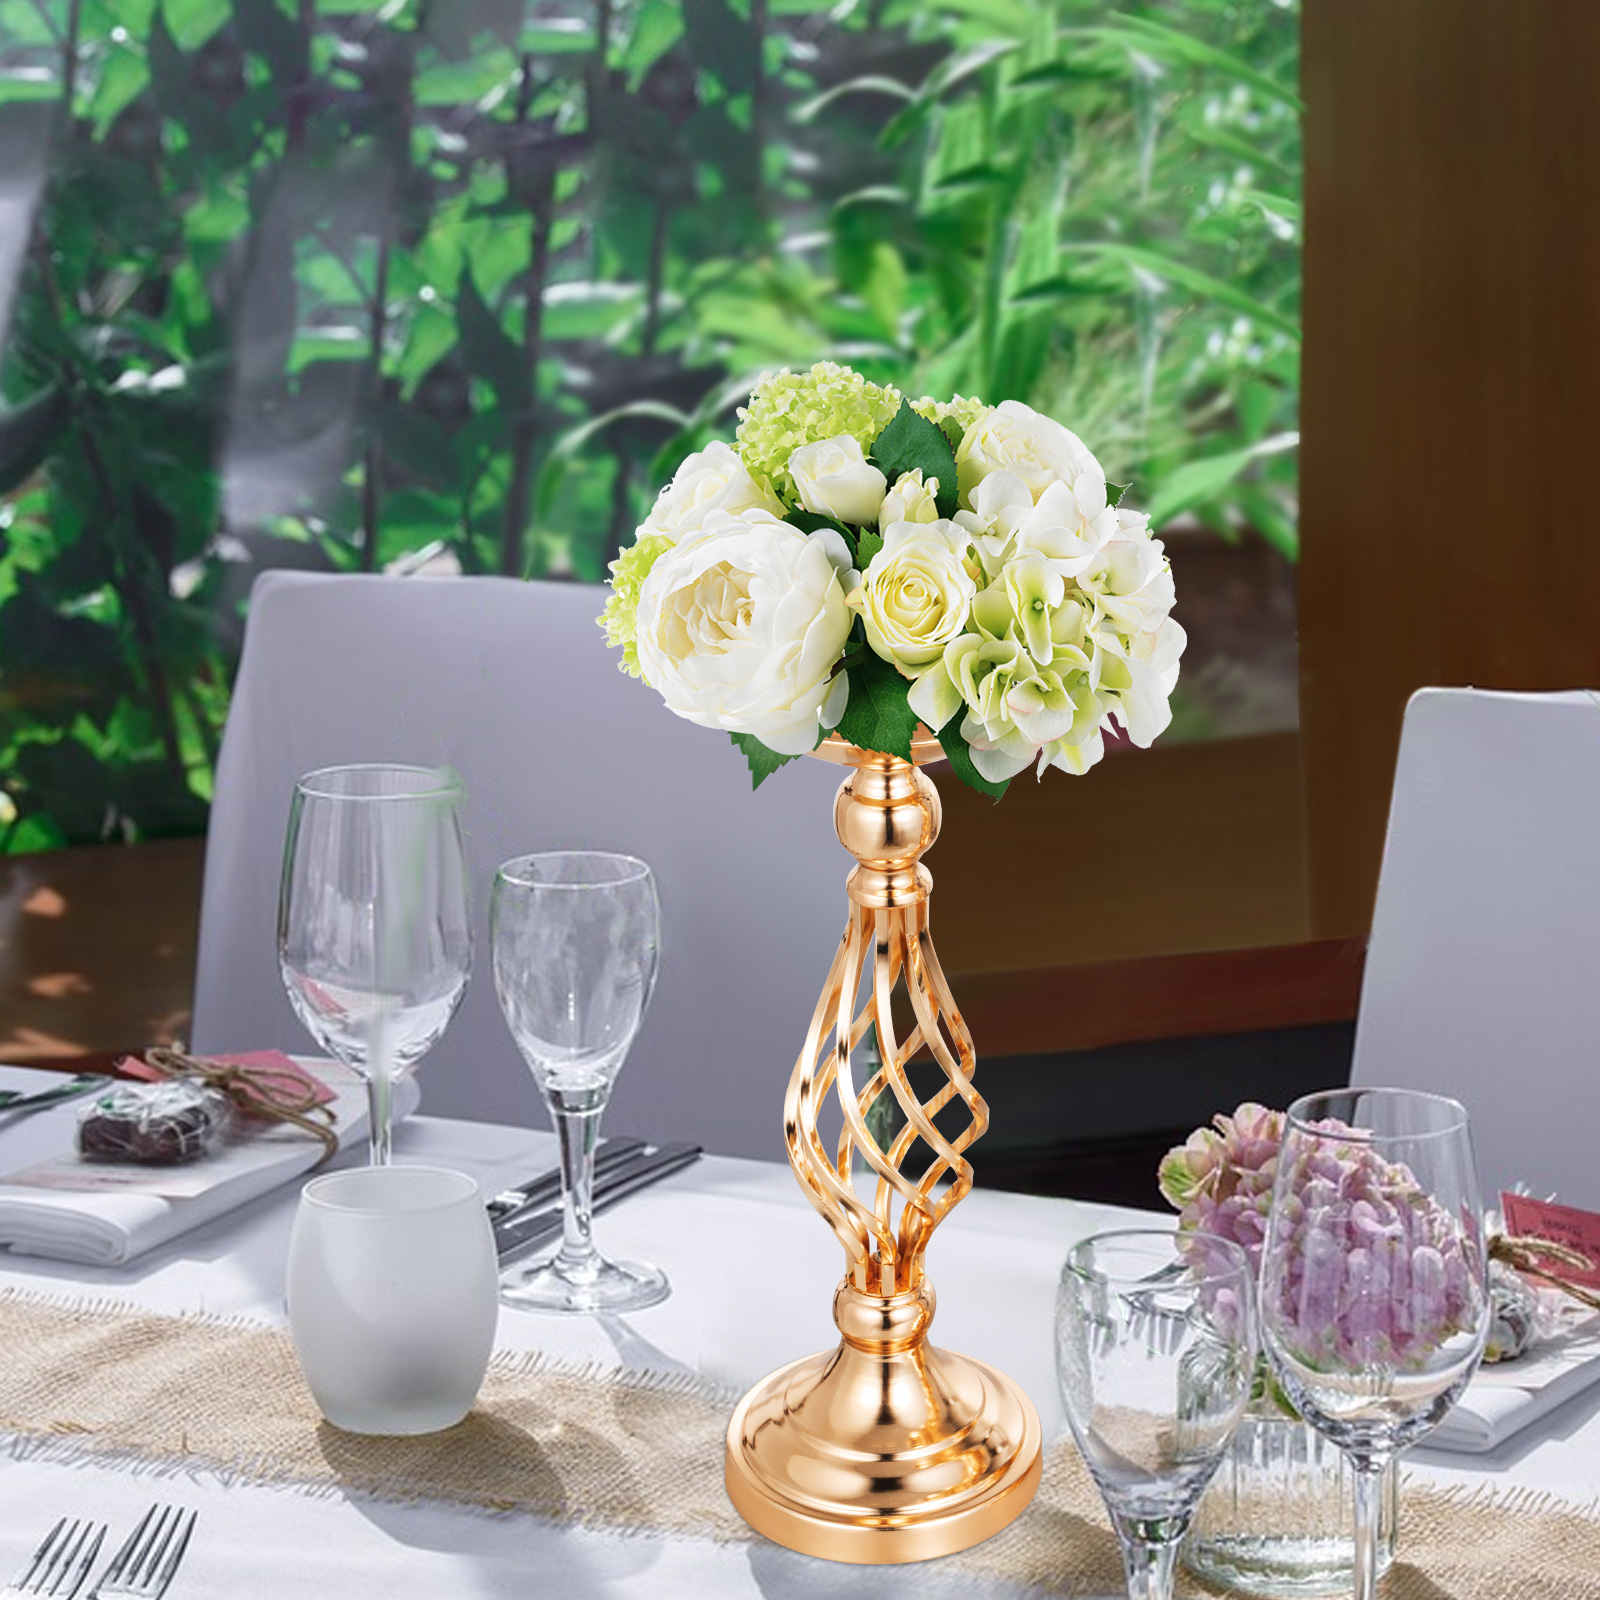 Flower-Rack-for-Wedding-Metal-Candle-Stand-4-11pcs-Centerpiece-Flower-Vase thumbnail 81